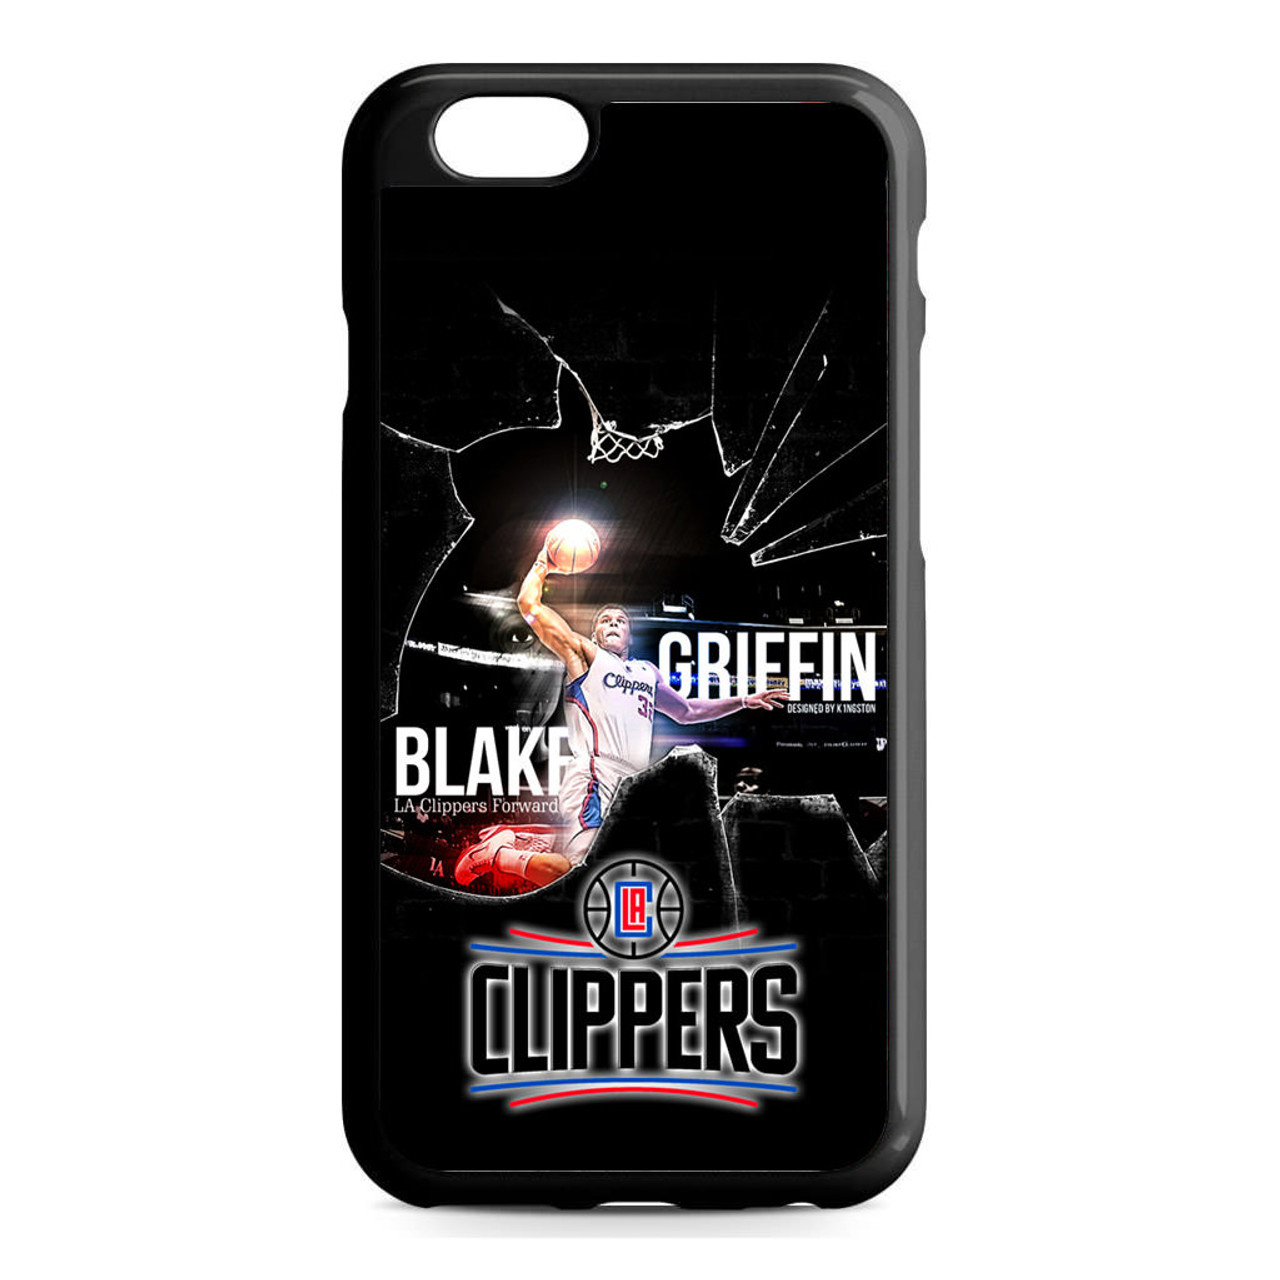 online store a0670 3899a Blake Griffin Clippers iPhone 6/6S Case